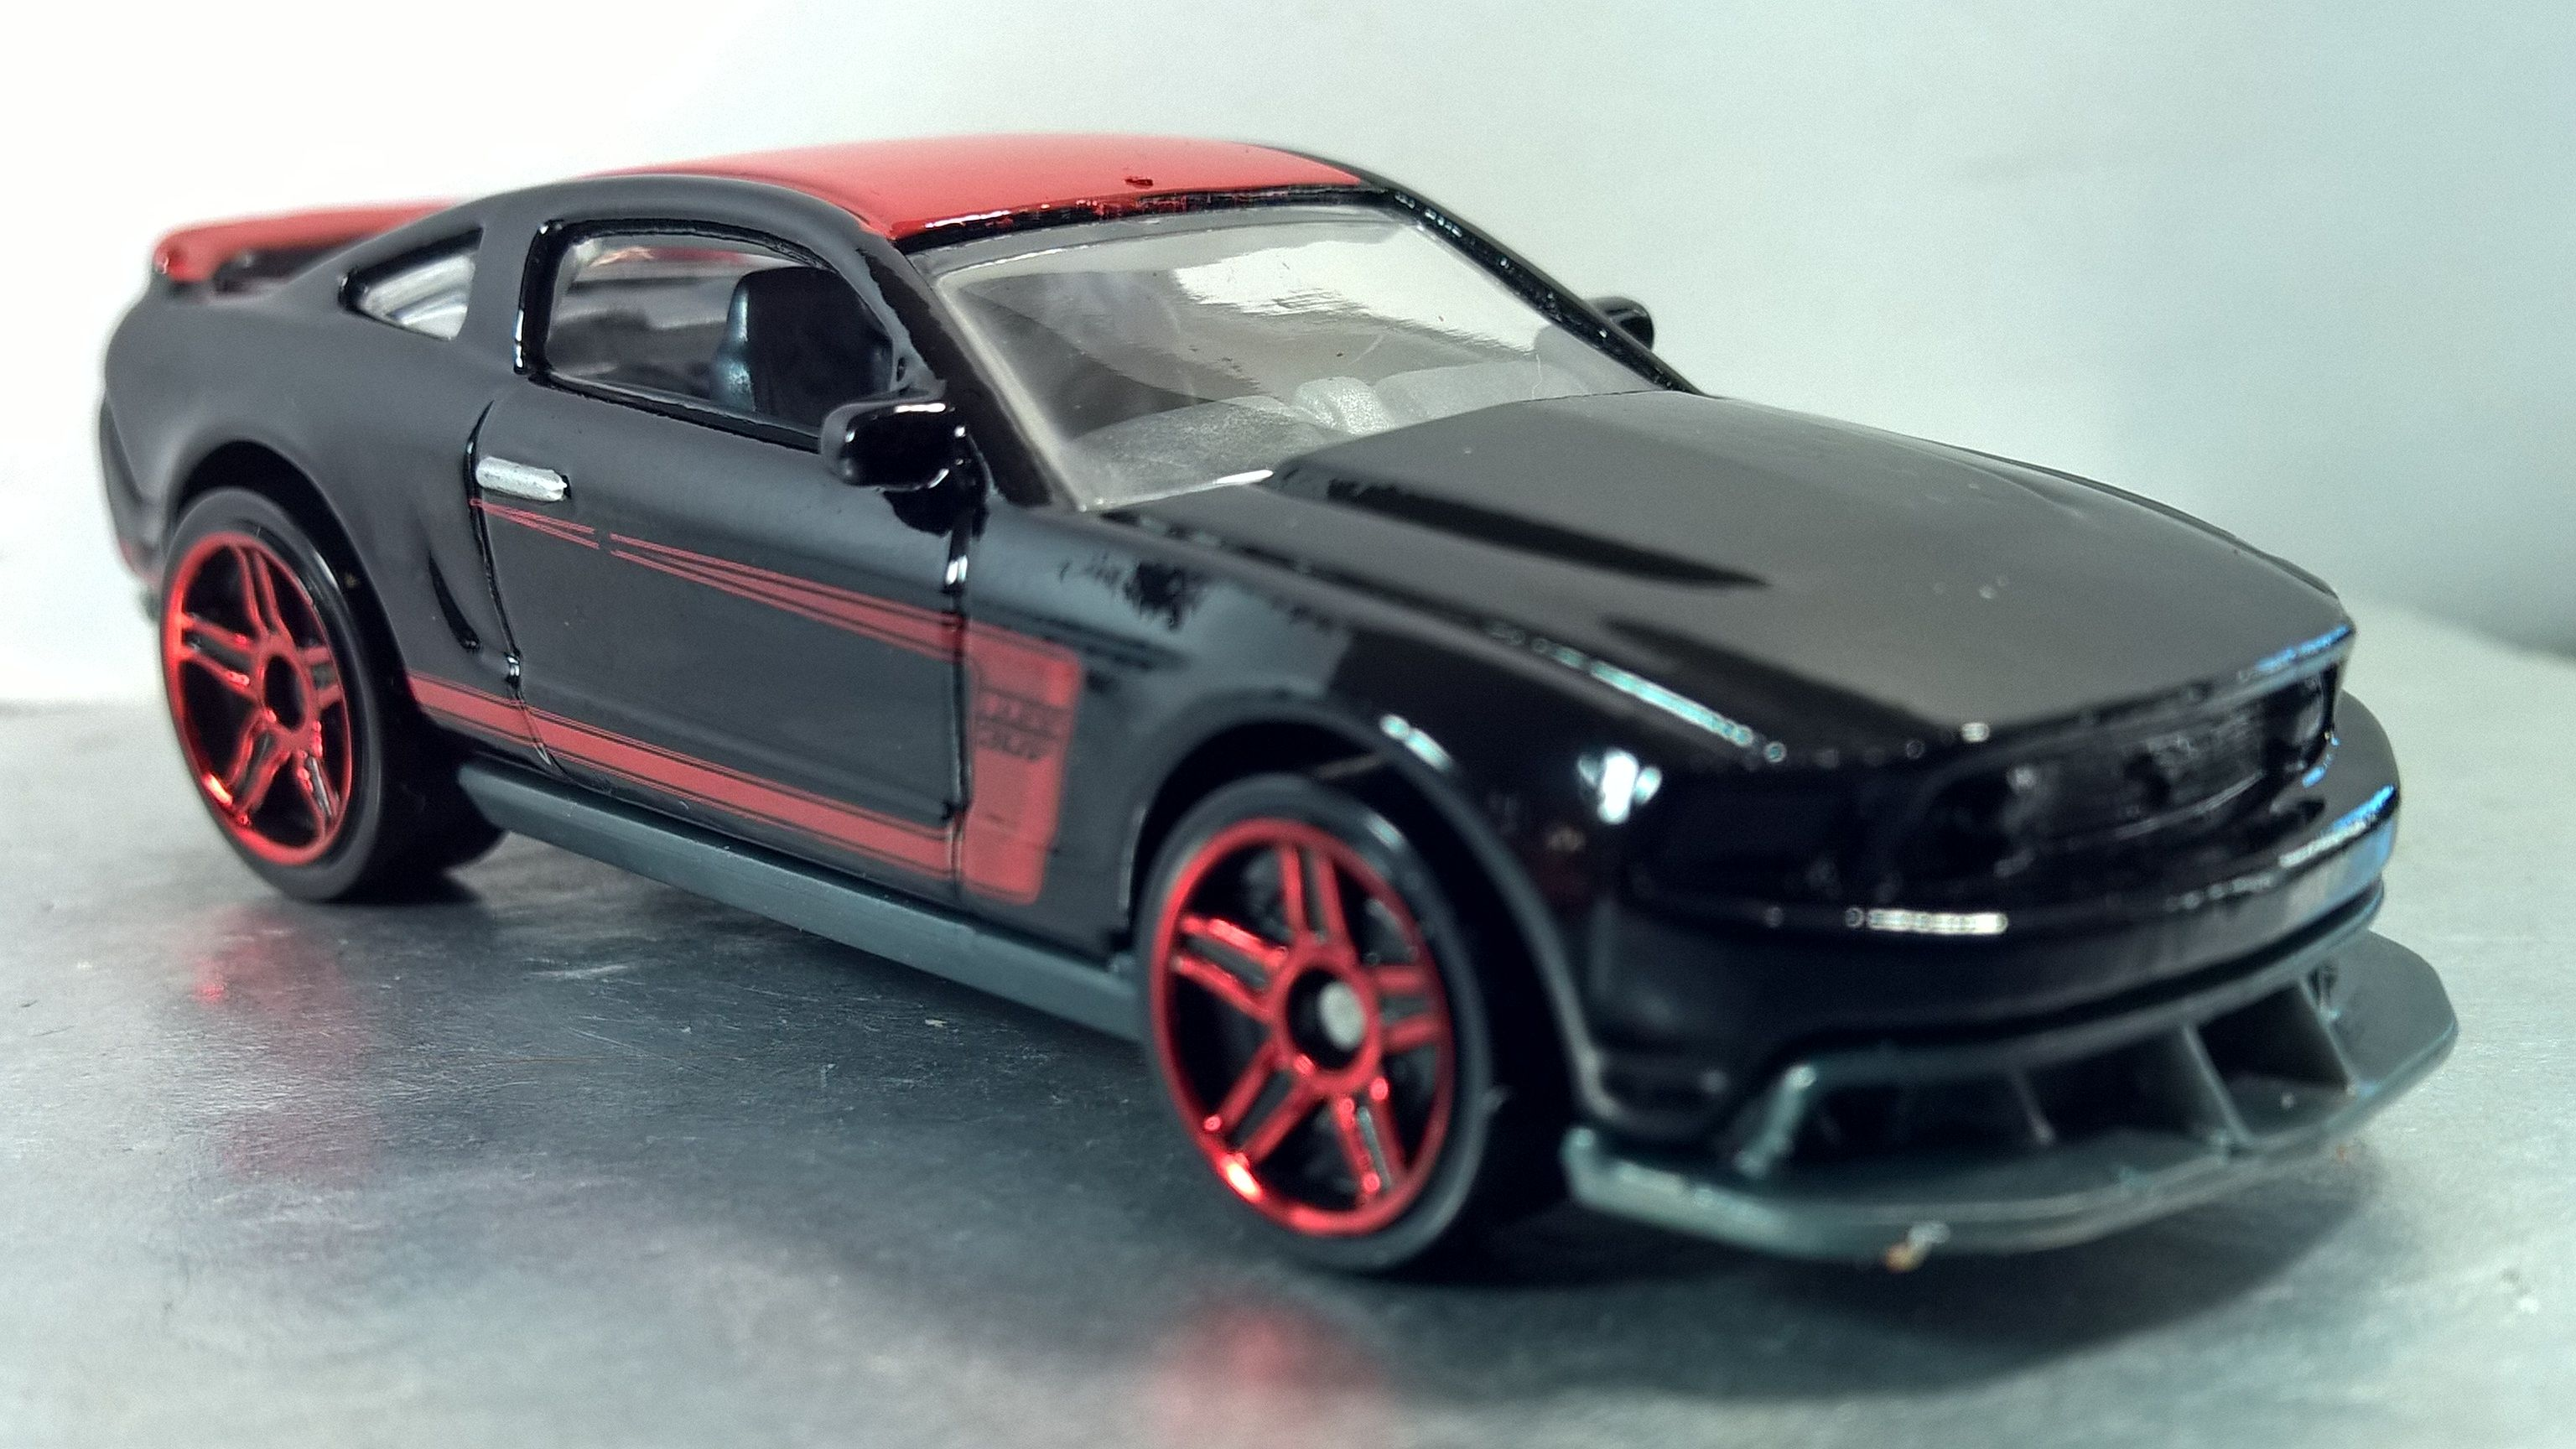 2012 Mustang Boss 302 Laguna Seca New Models 2012 8 Mustang Boss 302 Hot Wheels 2012 Mustang